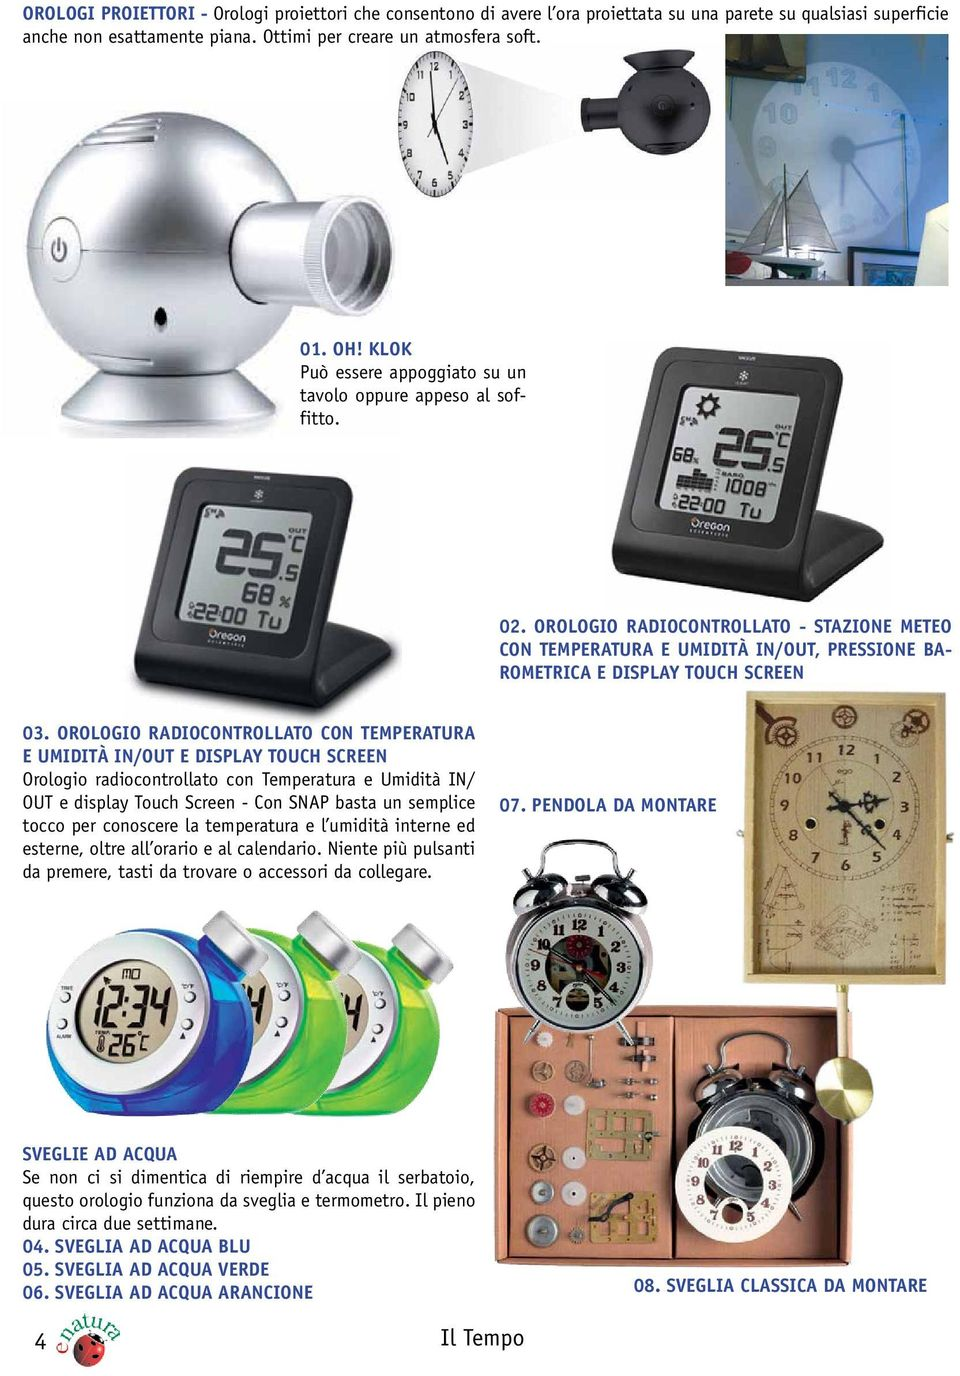 OROLOGIO RADIOCONTROLLATO CON TEMPERATURA E UMIDITÀ IN/OUT E DISPLAY TOUCH SCREEN Orologio radiocontrollato con Temperatura e Umidità IN/ OUT e display Touch Screen - Con SNAP basta un semplice tocco